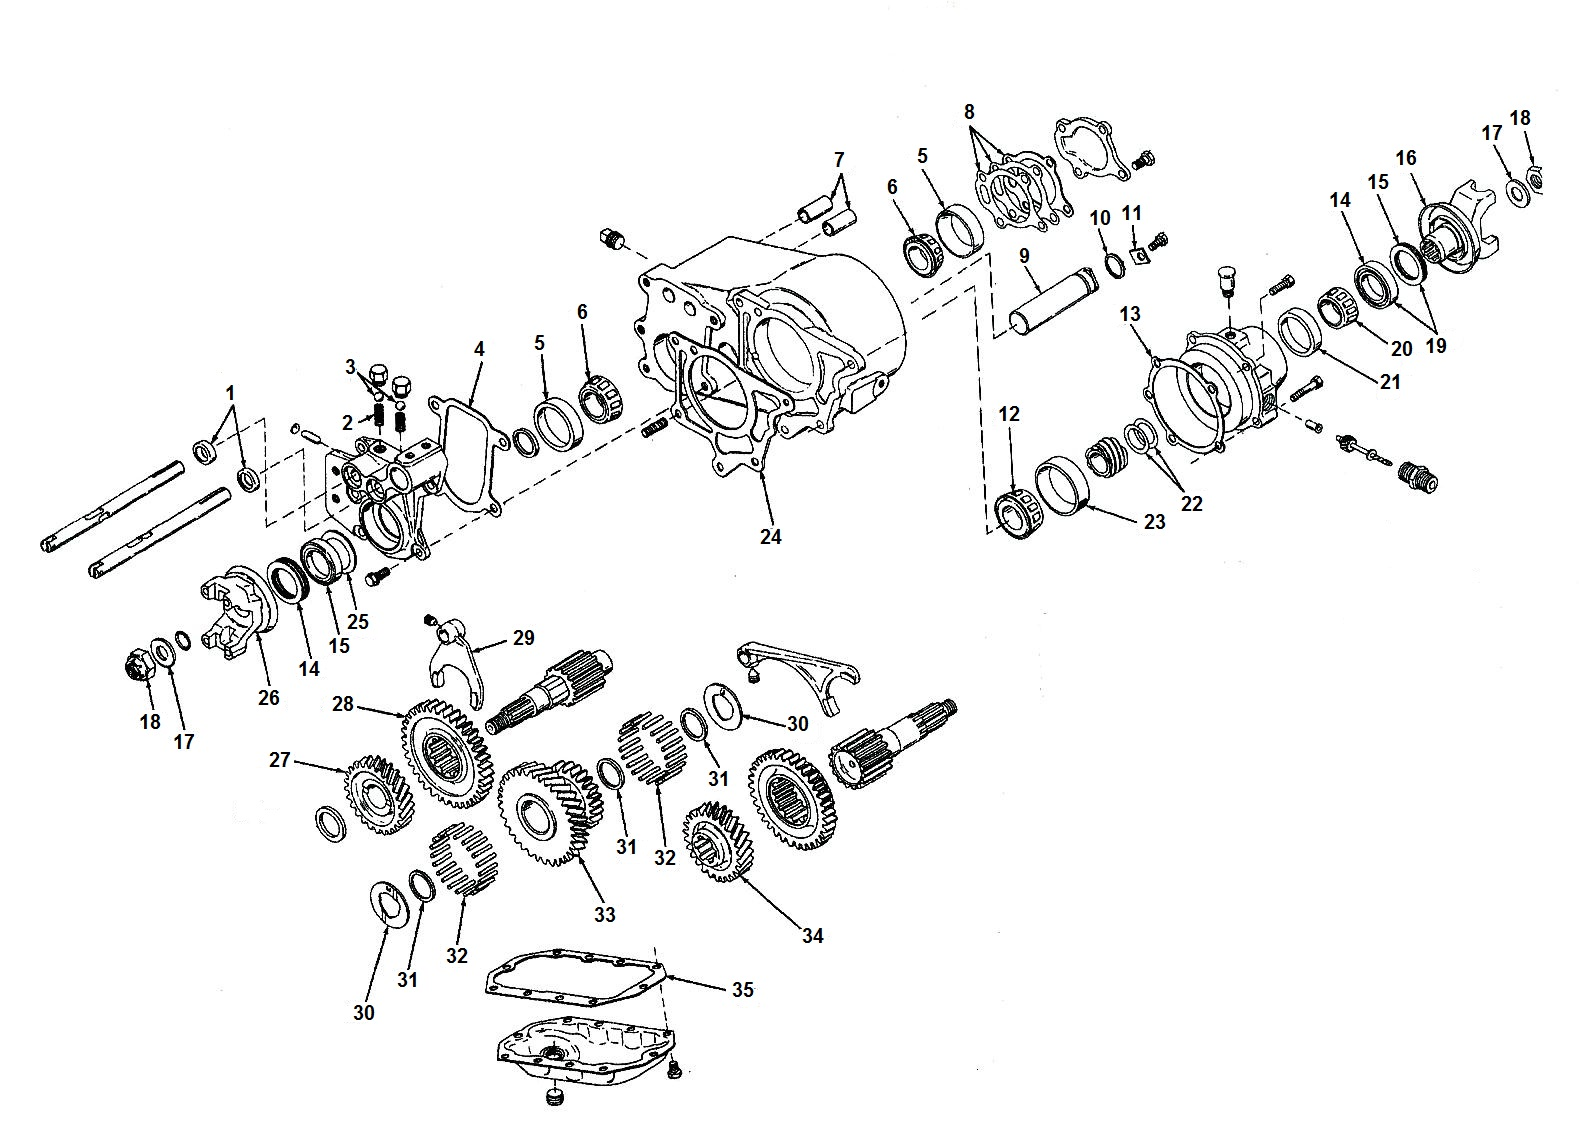 1950 Willys Jeepster Wiring Diagram Overland